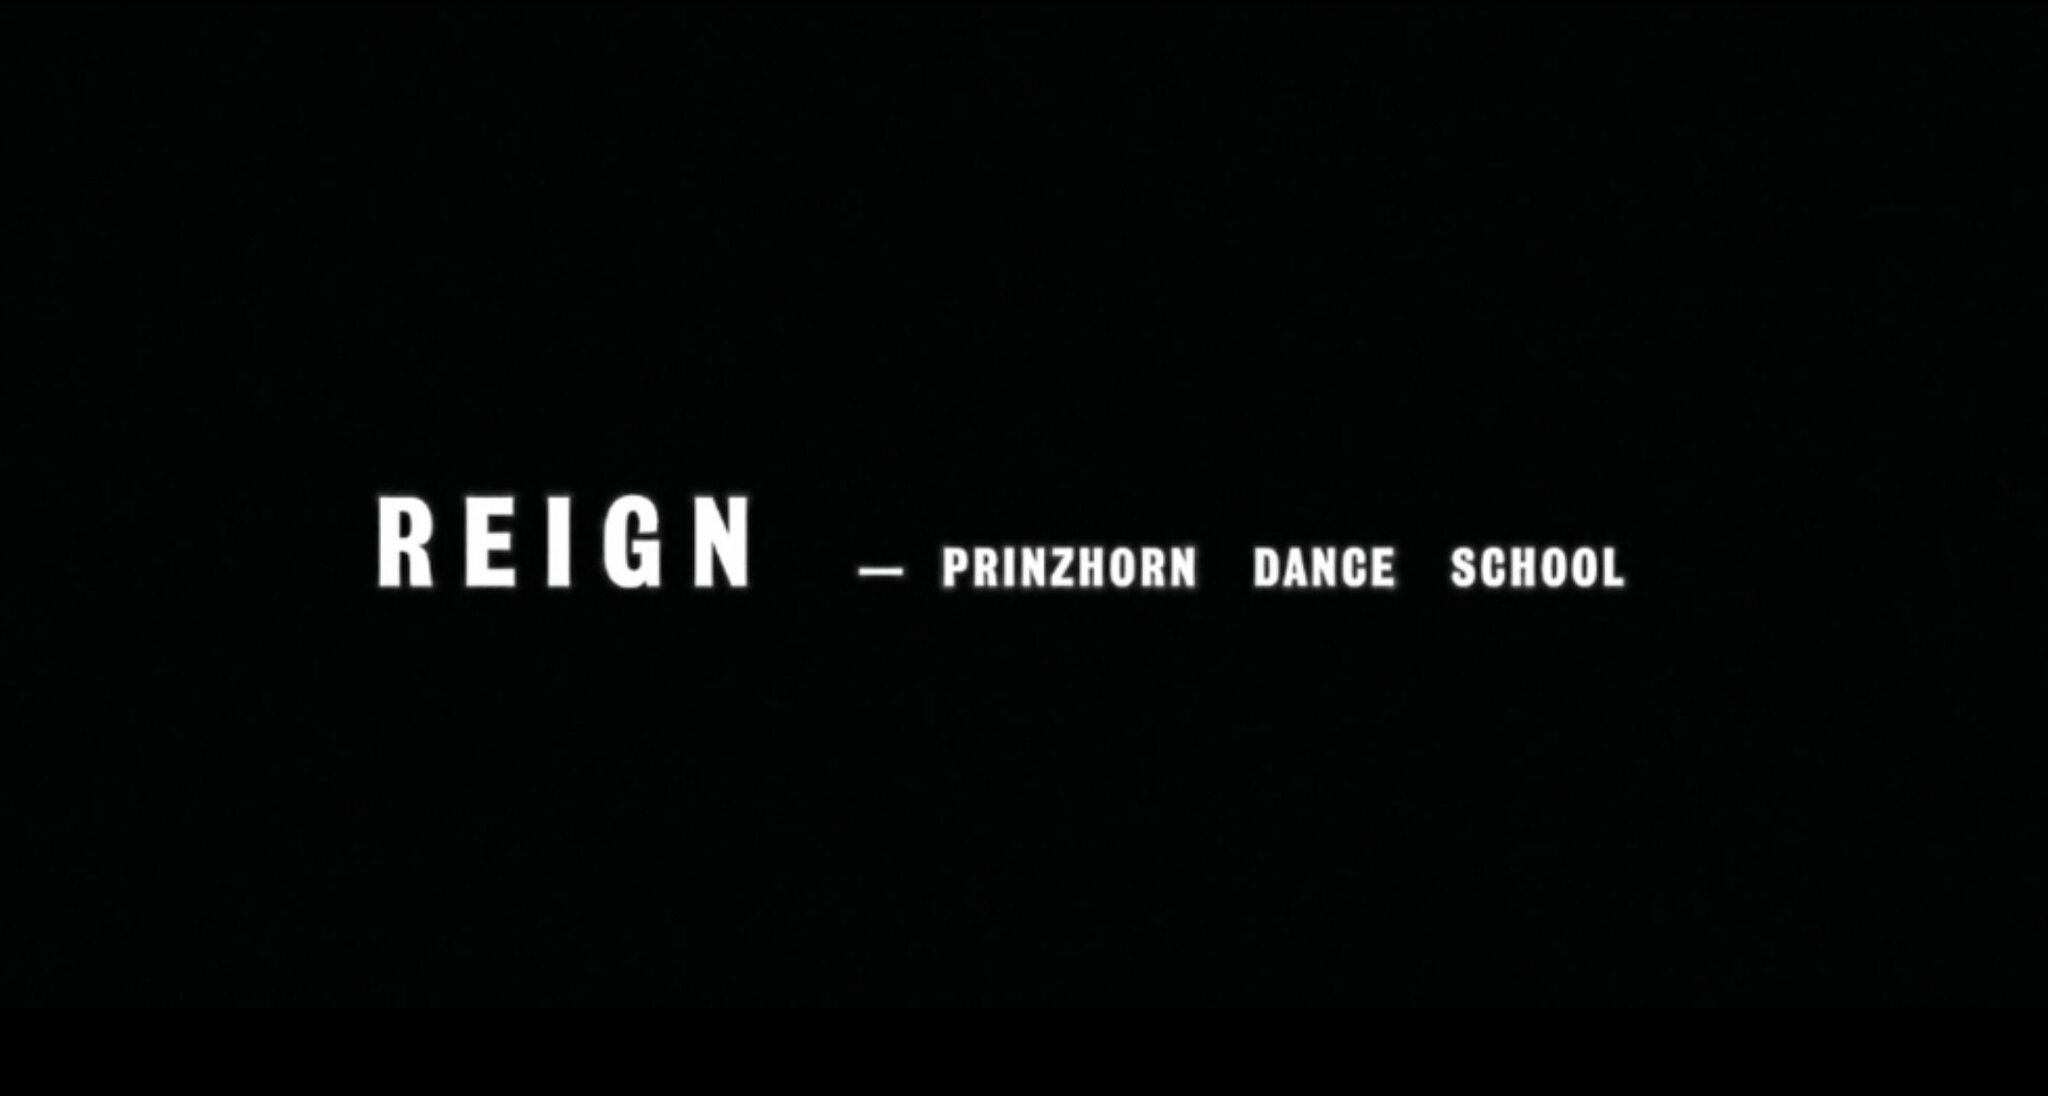 prinzhorn dance school film for Reign